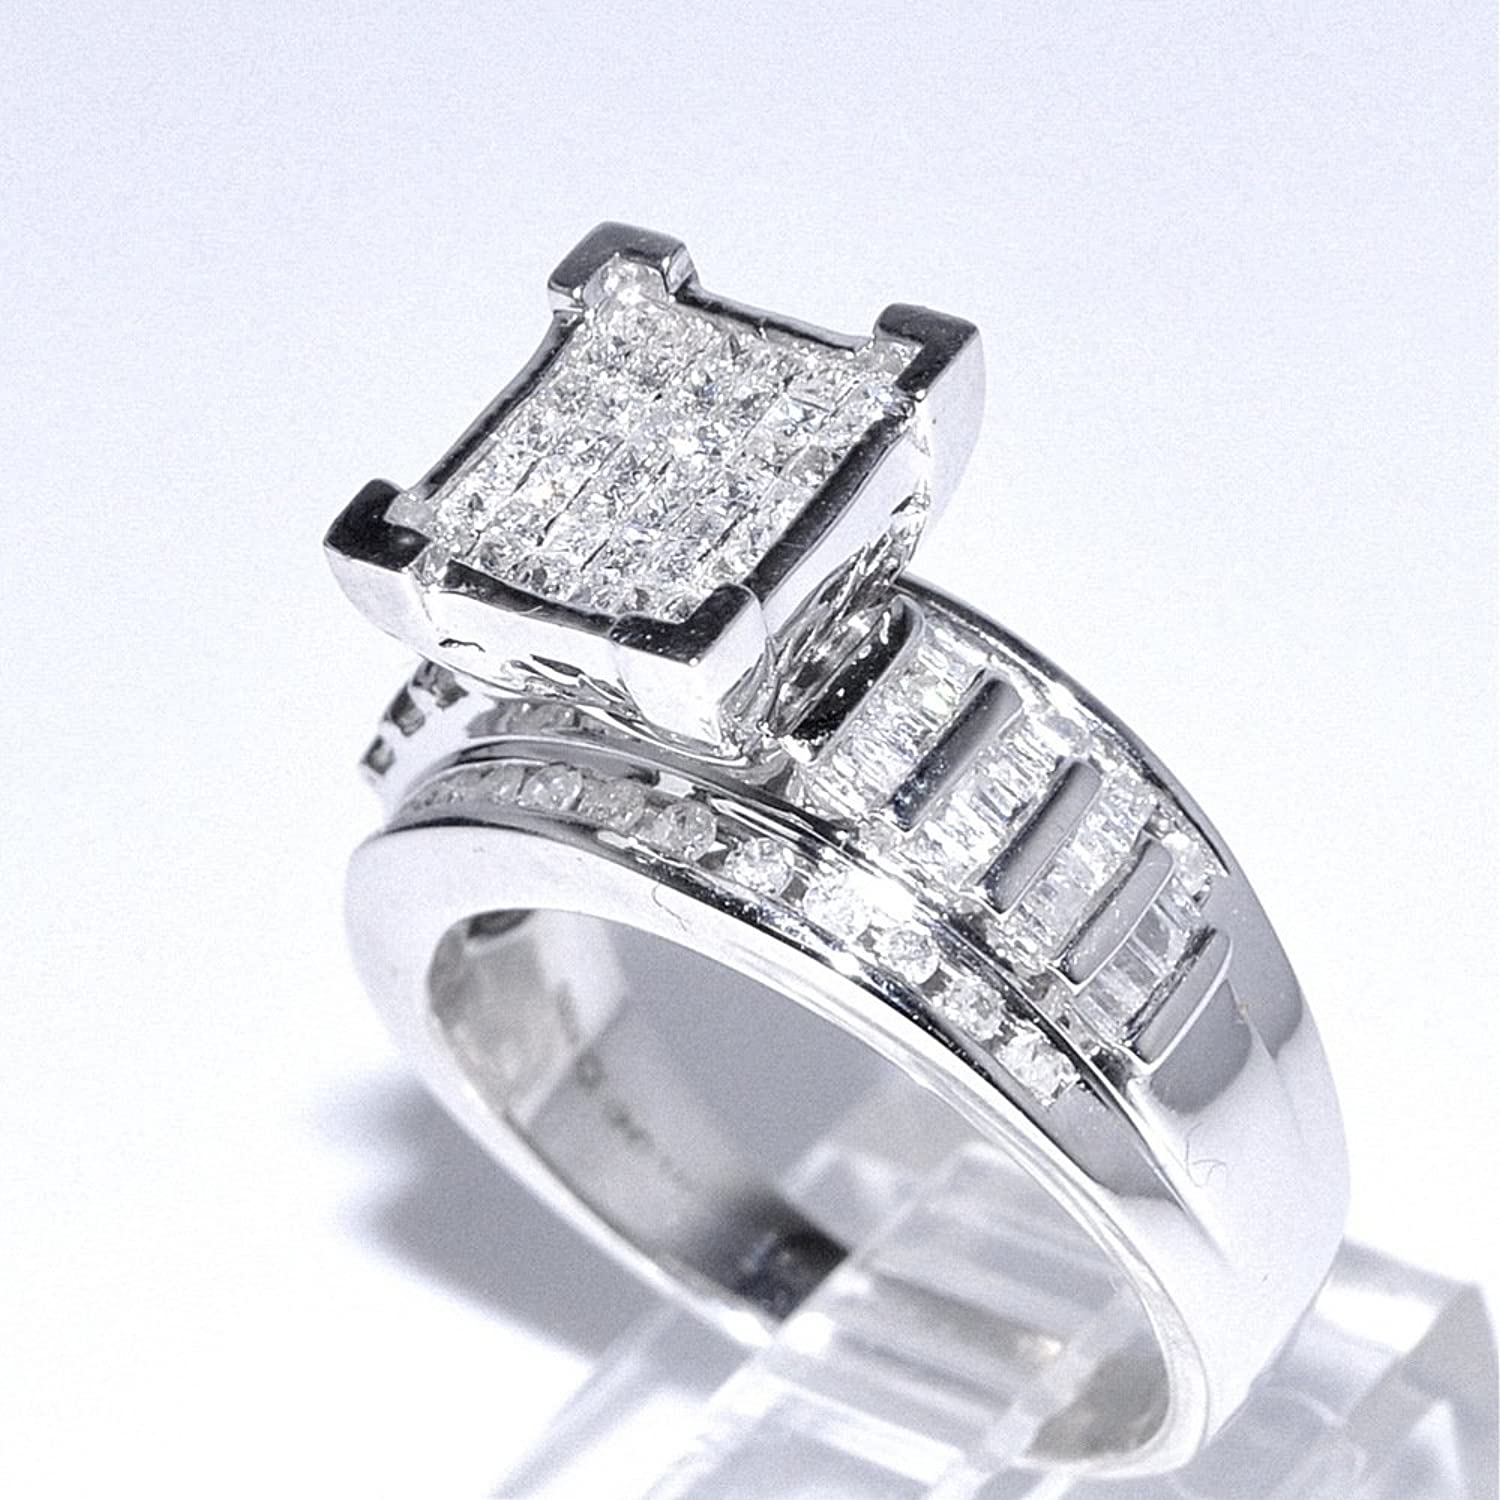 jewellery edge white knife diamond h engagement ct cut pave itm image princess is ring loading rings gold